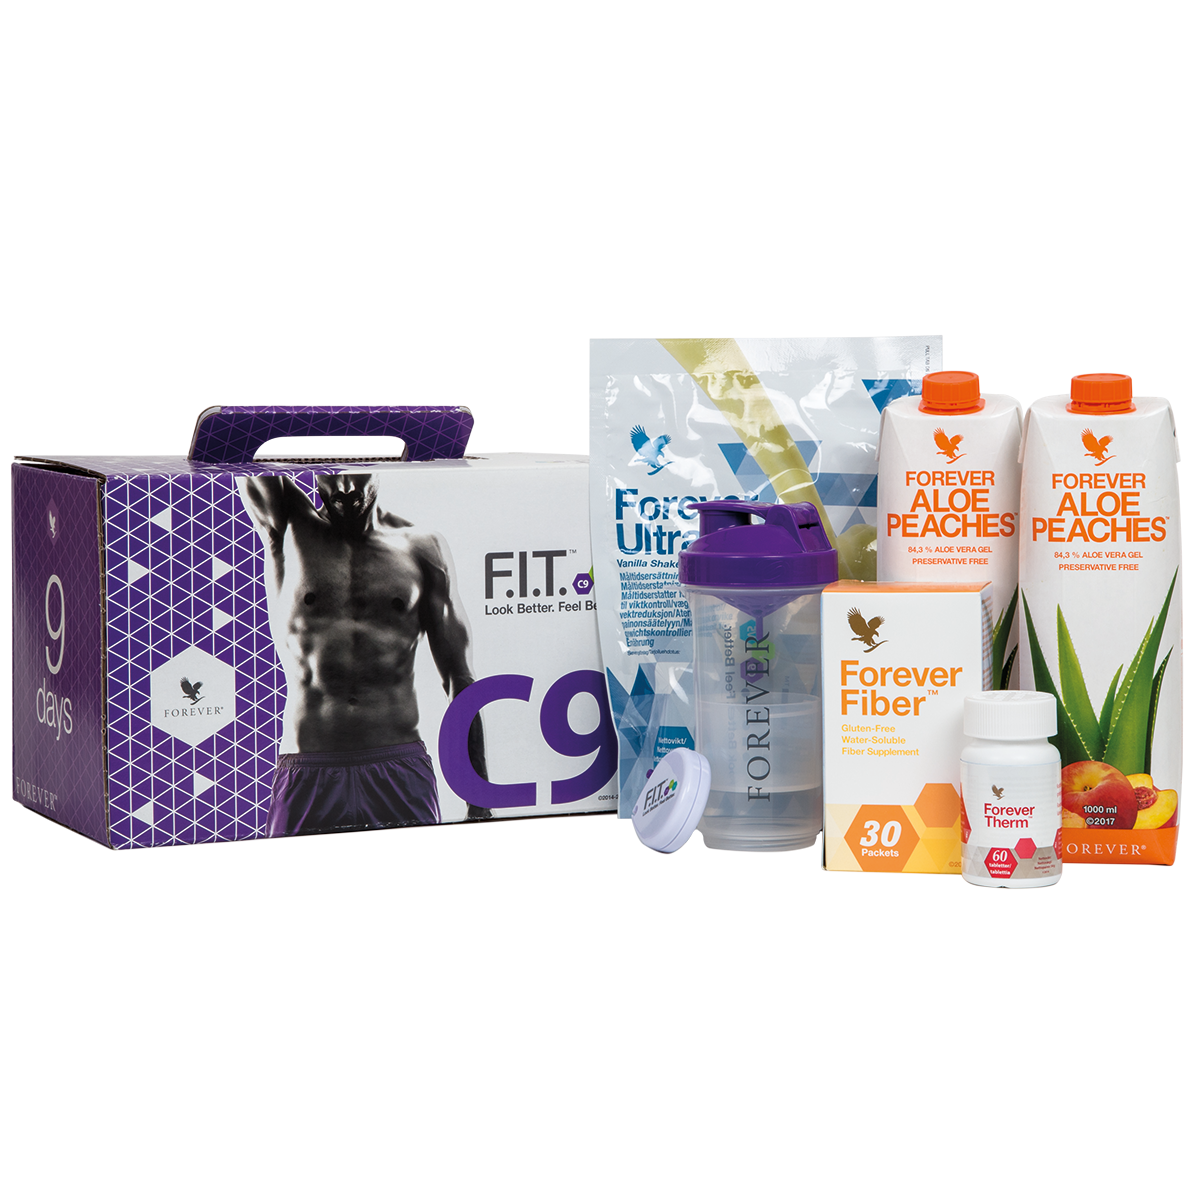 The C9 programme gives you Forever Ultra, Forever Therm, Forever Fiber and Forever Aloe Vera Gel – as well as a manual to help you change your lifestyle.